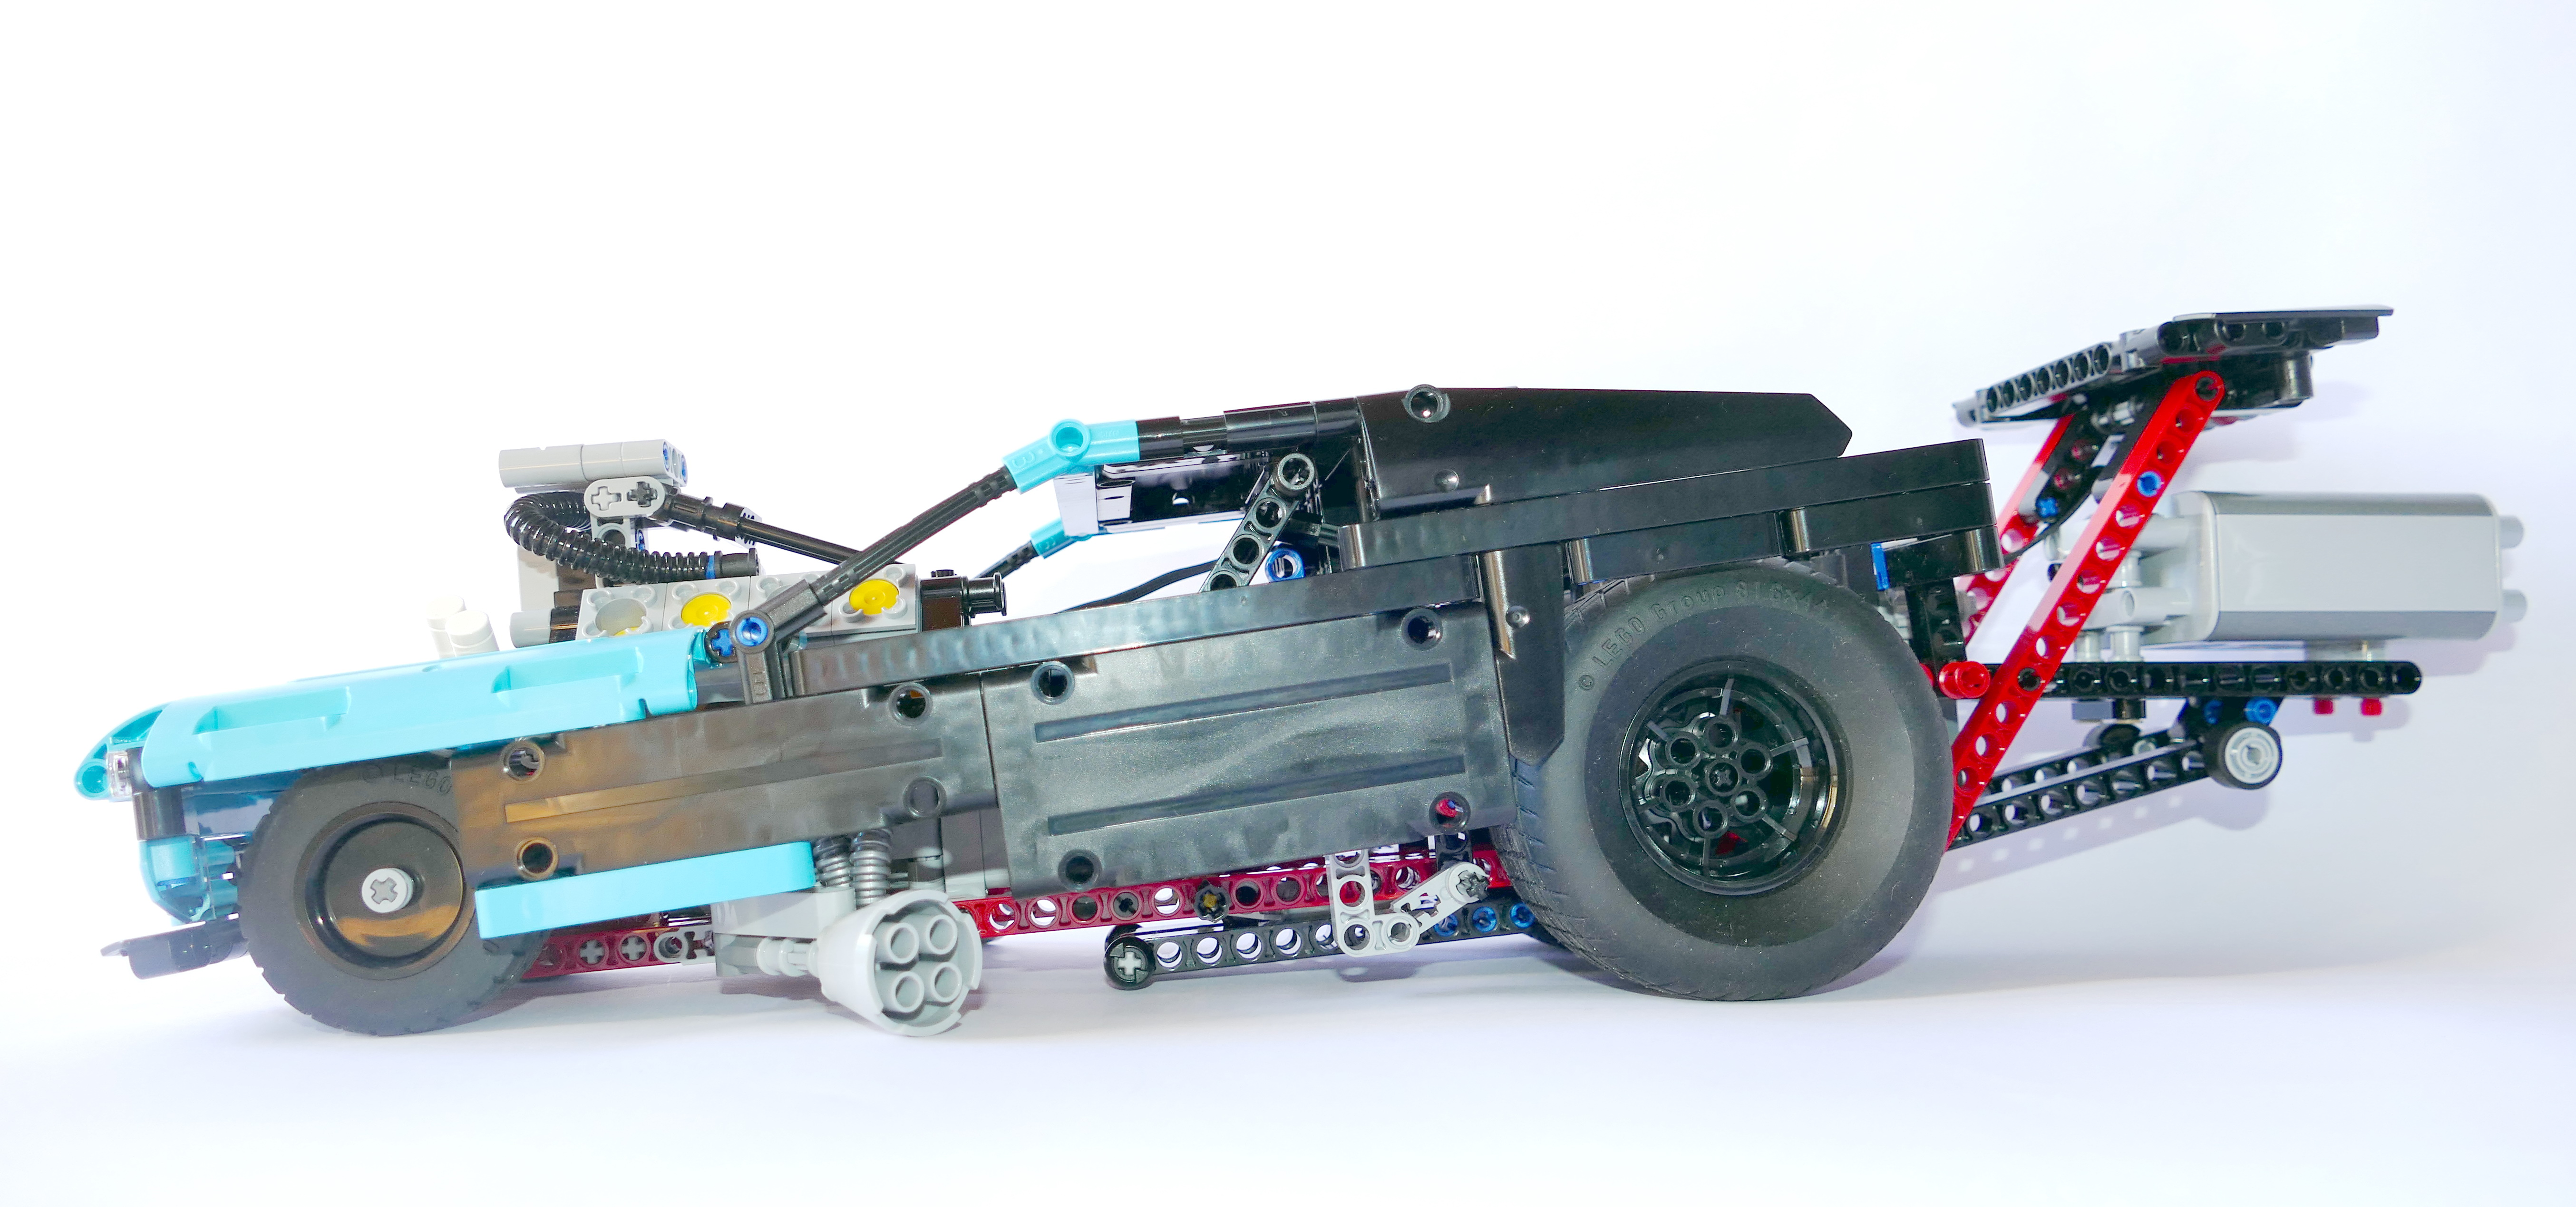 42050 Dragster Rc Muuss Lego